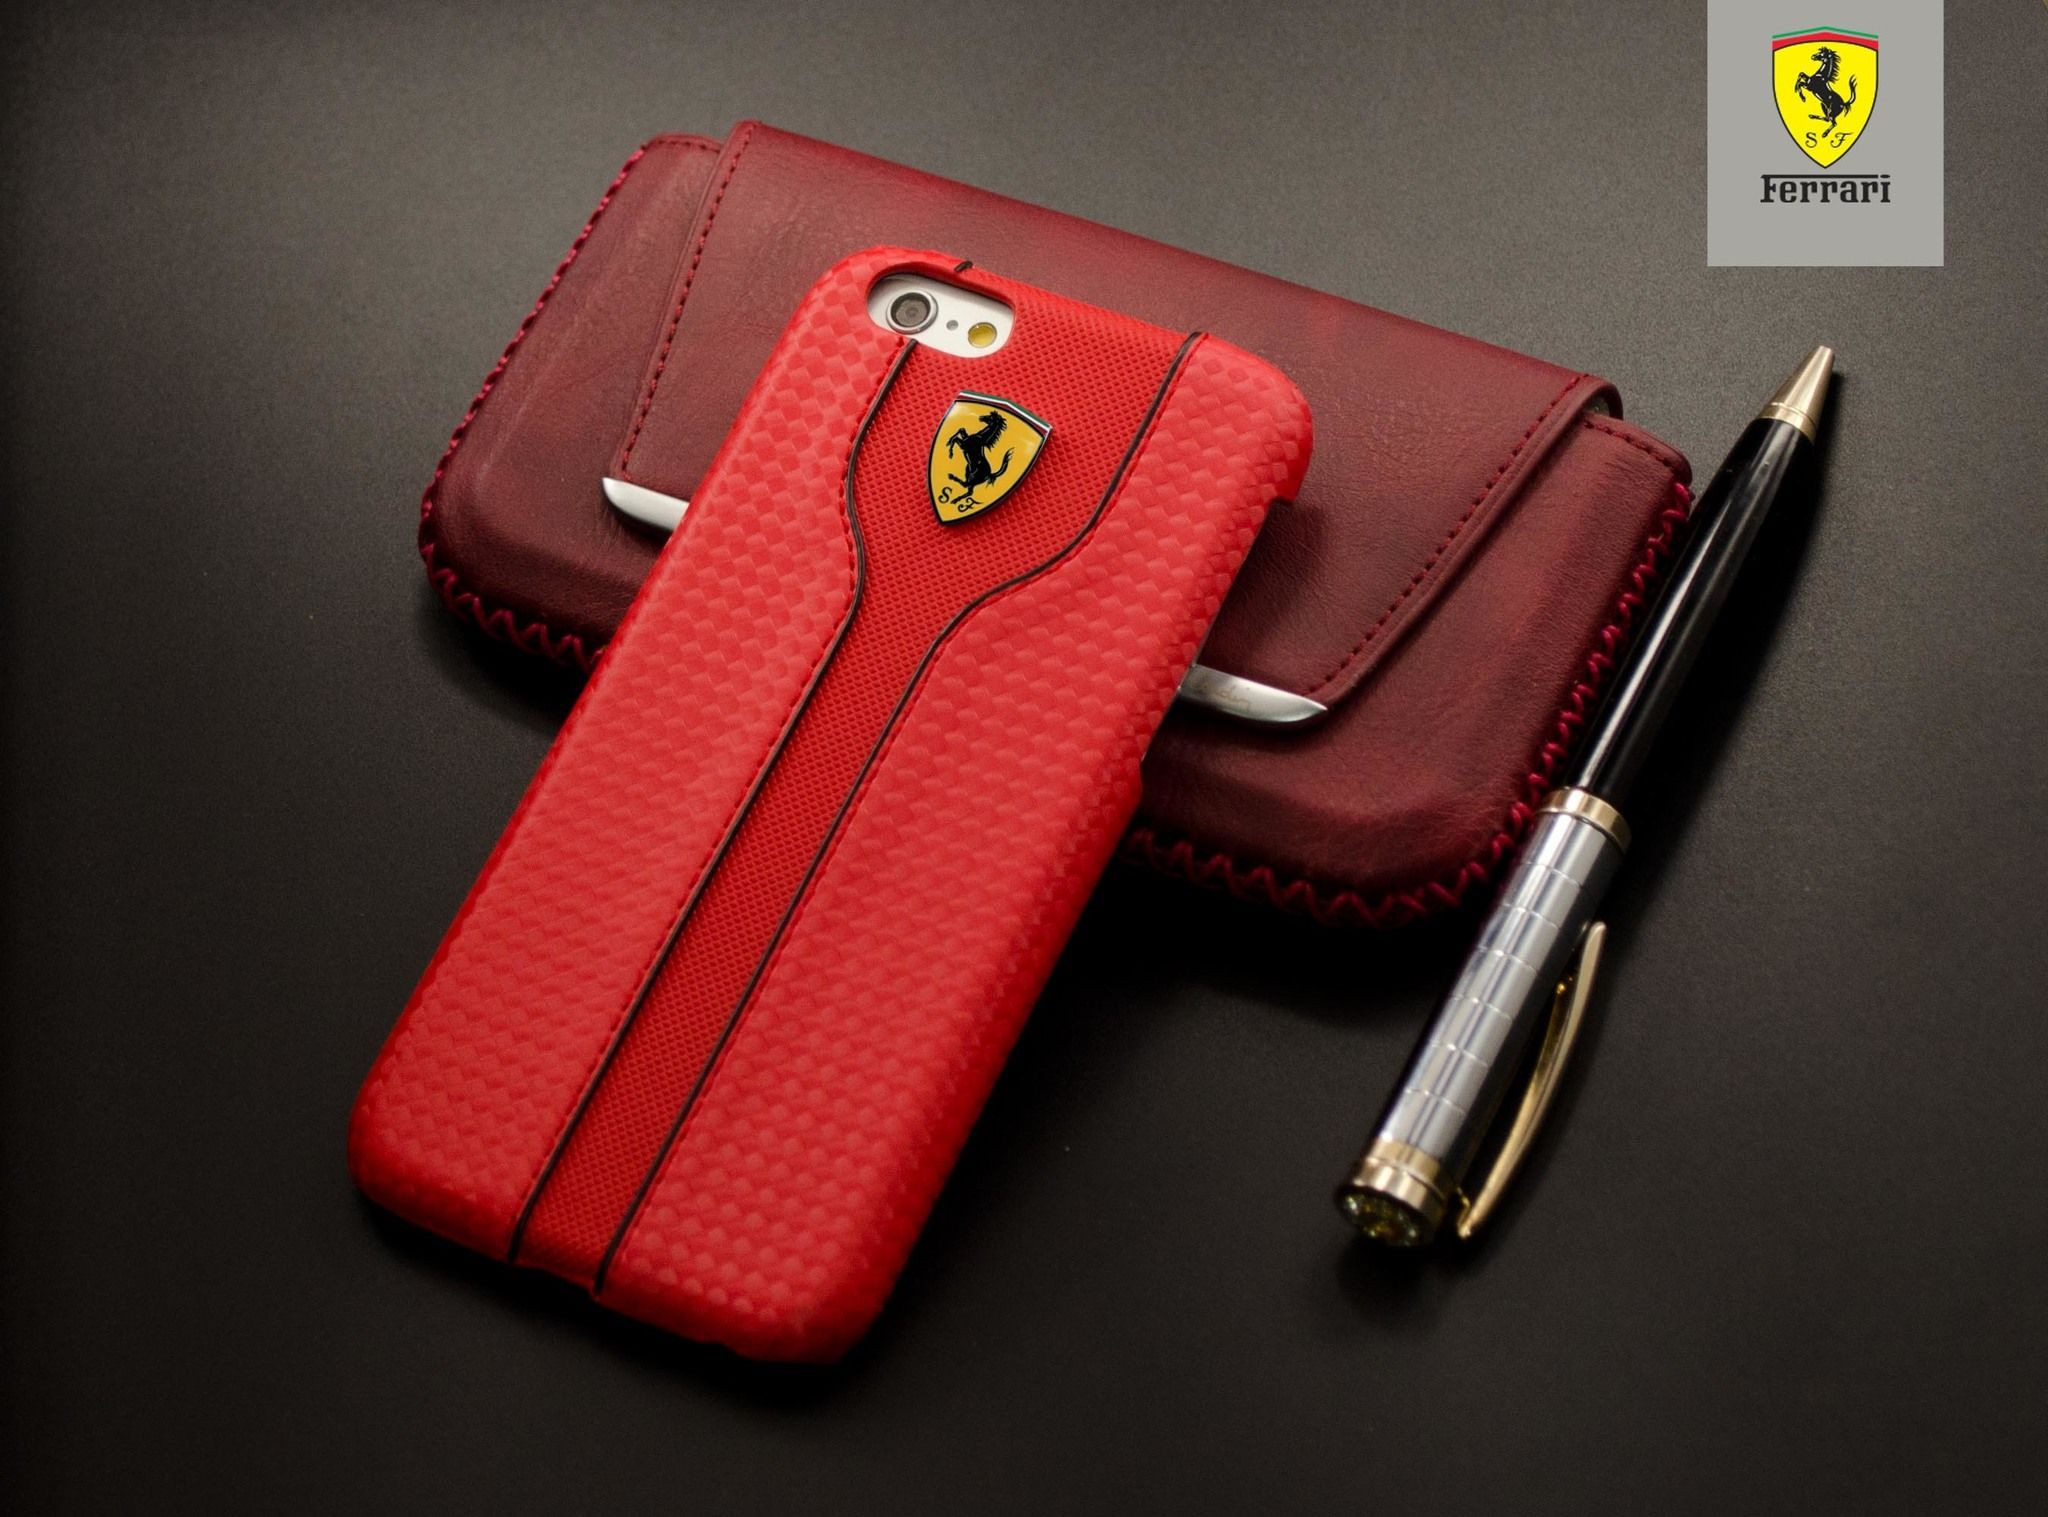 custodia iphone 6 plus ferrari